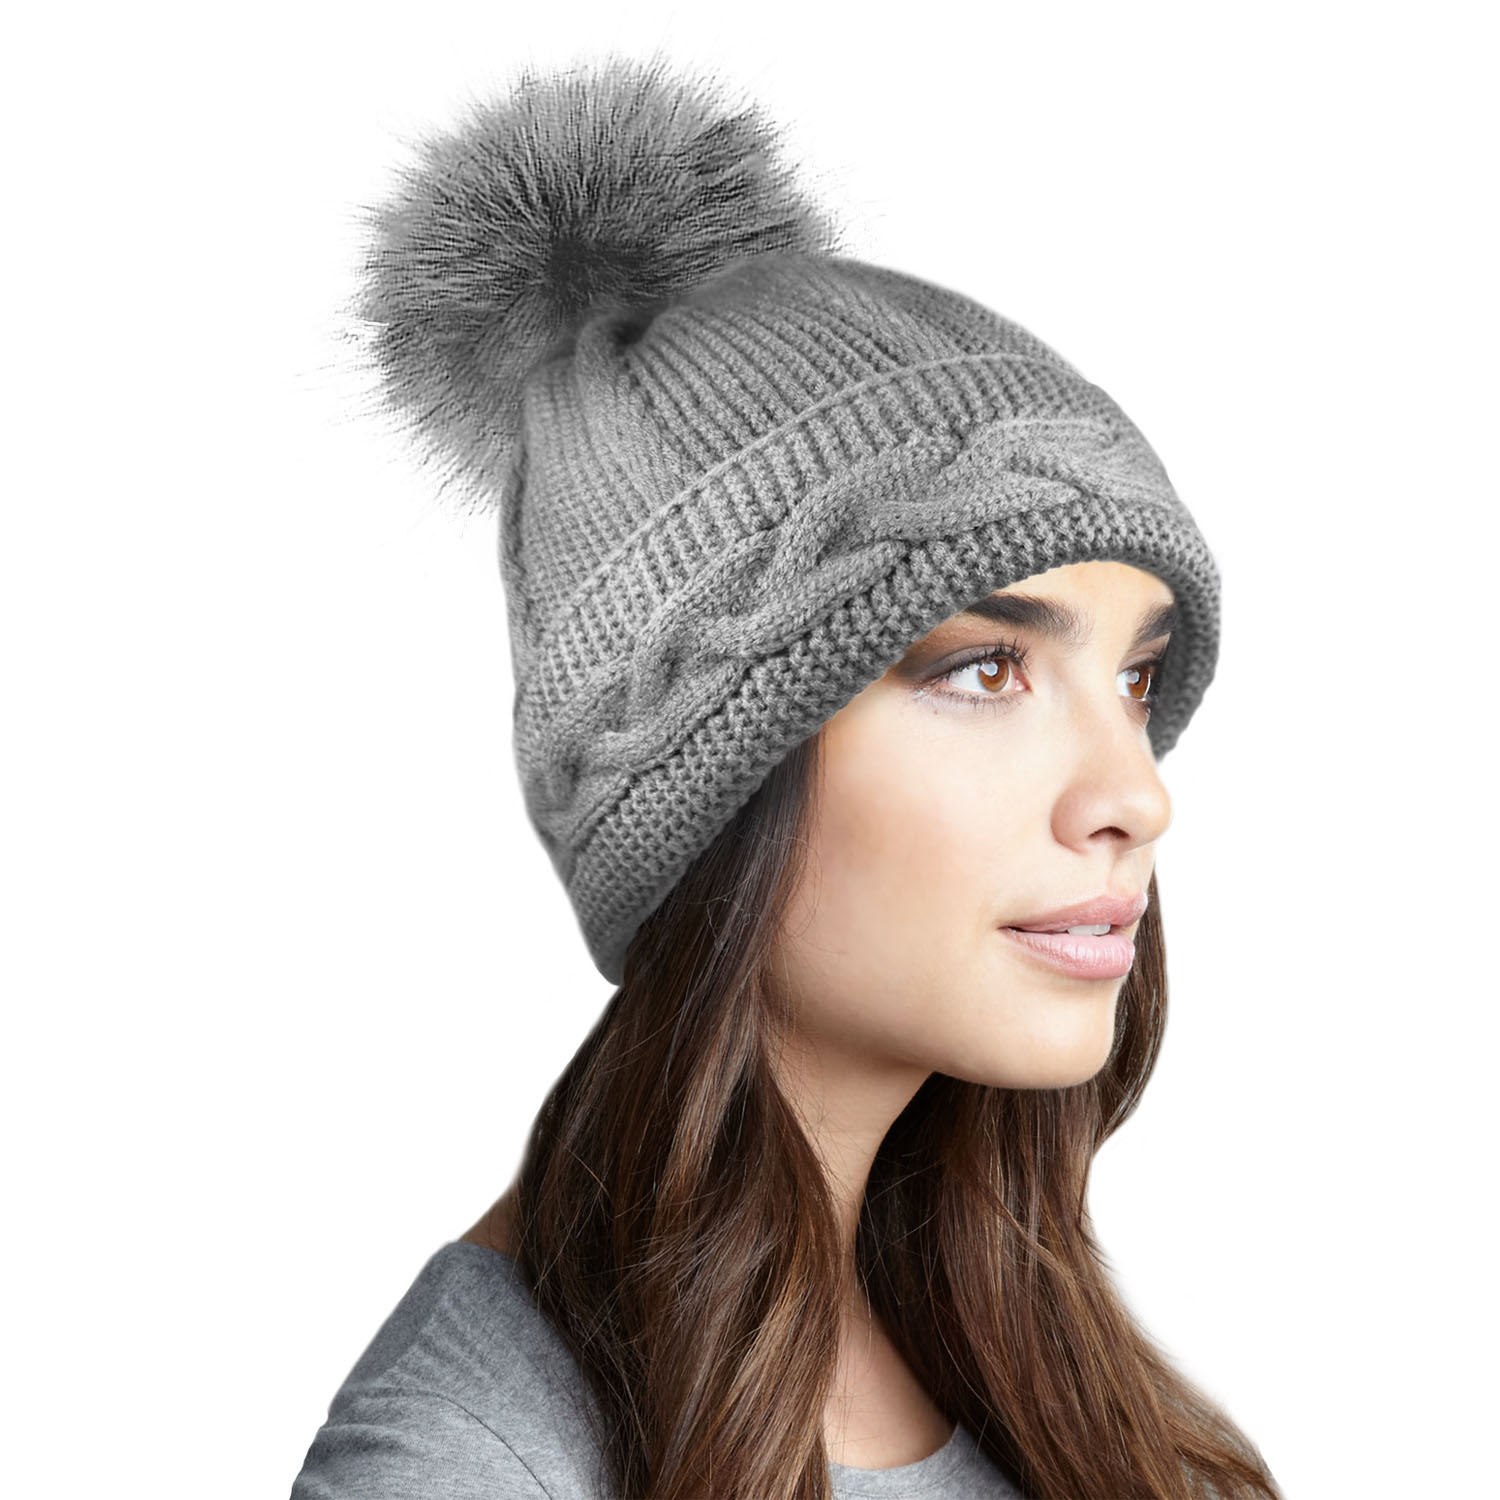 LADIES WOMENS WARM WINTER CHUNKY CABLE KNIT BEANIE BOBBLE ...